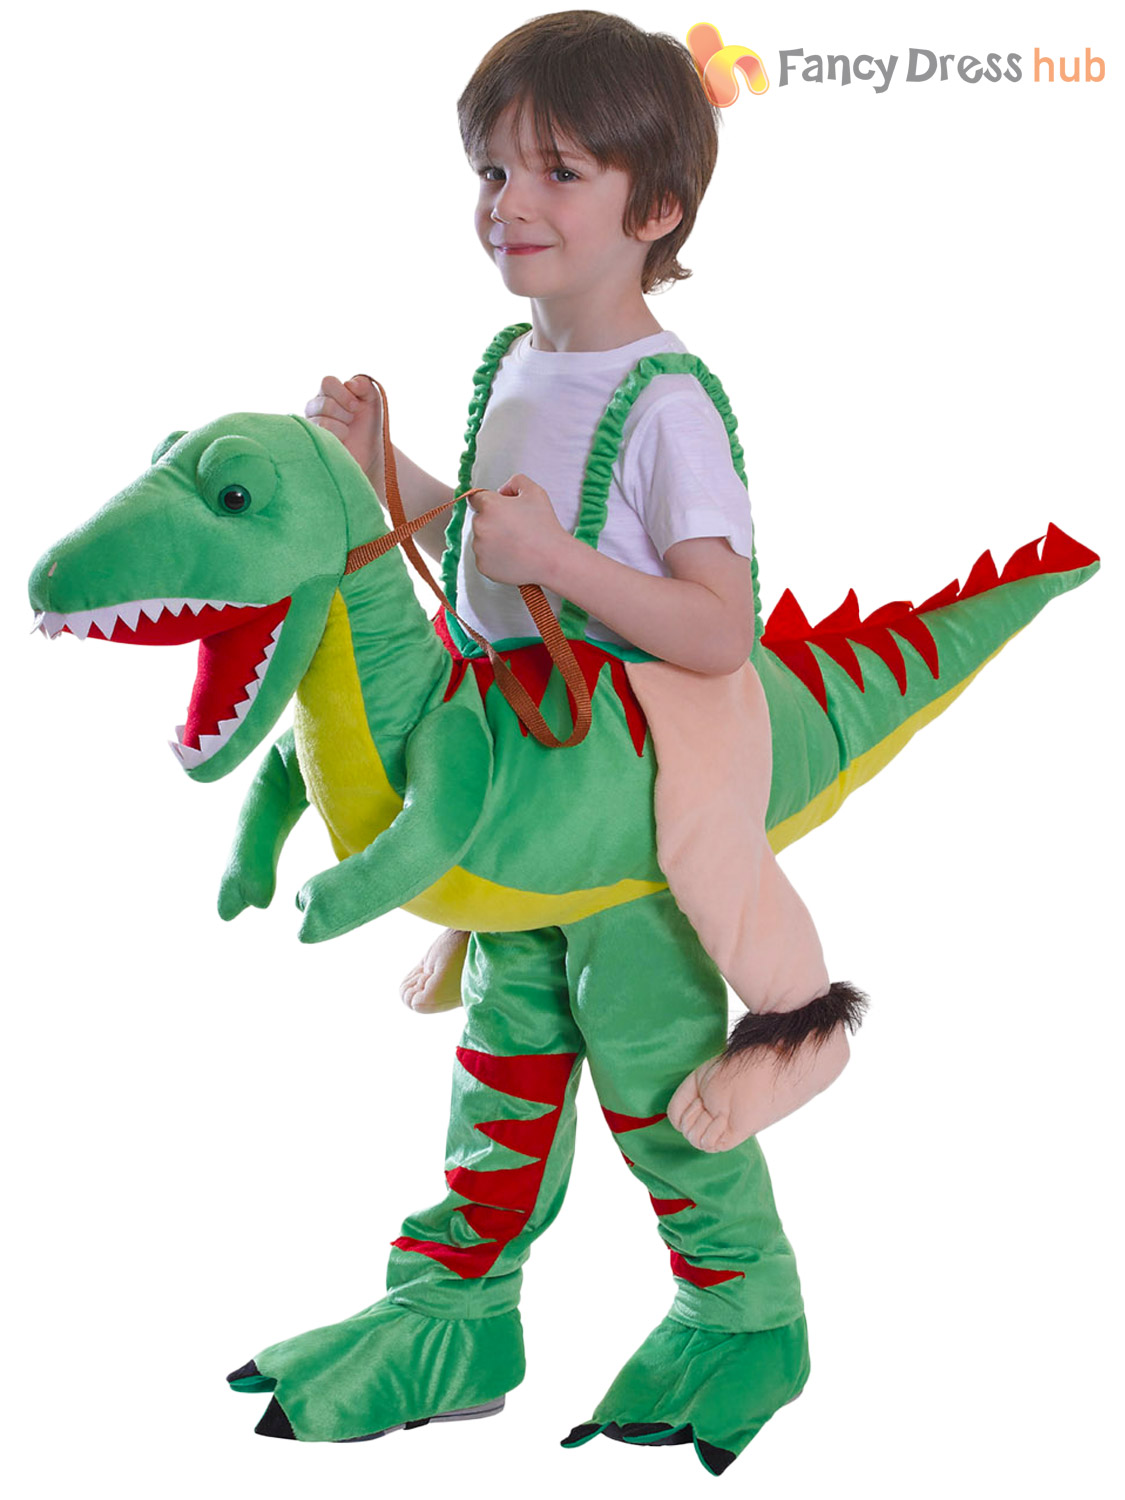 ... Picture 2 of 2  sc 1 st  eBay & Bristol Novelty CC044 Riding Dinosaur One Size | eBay